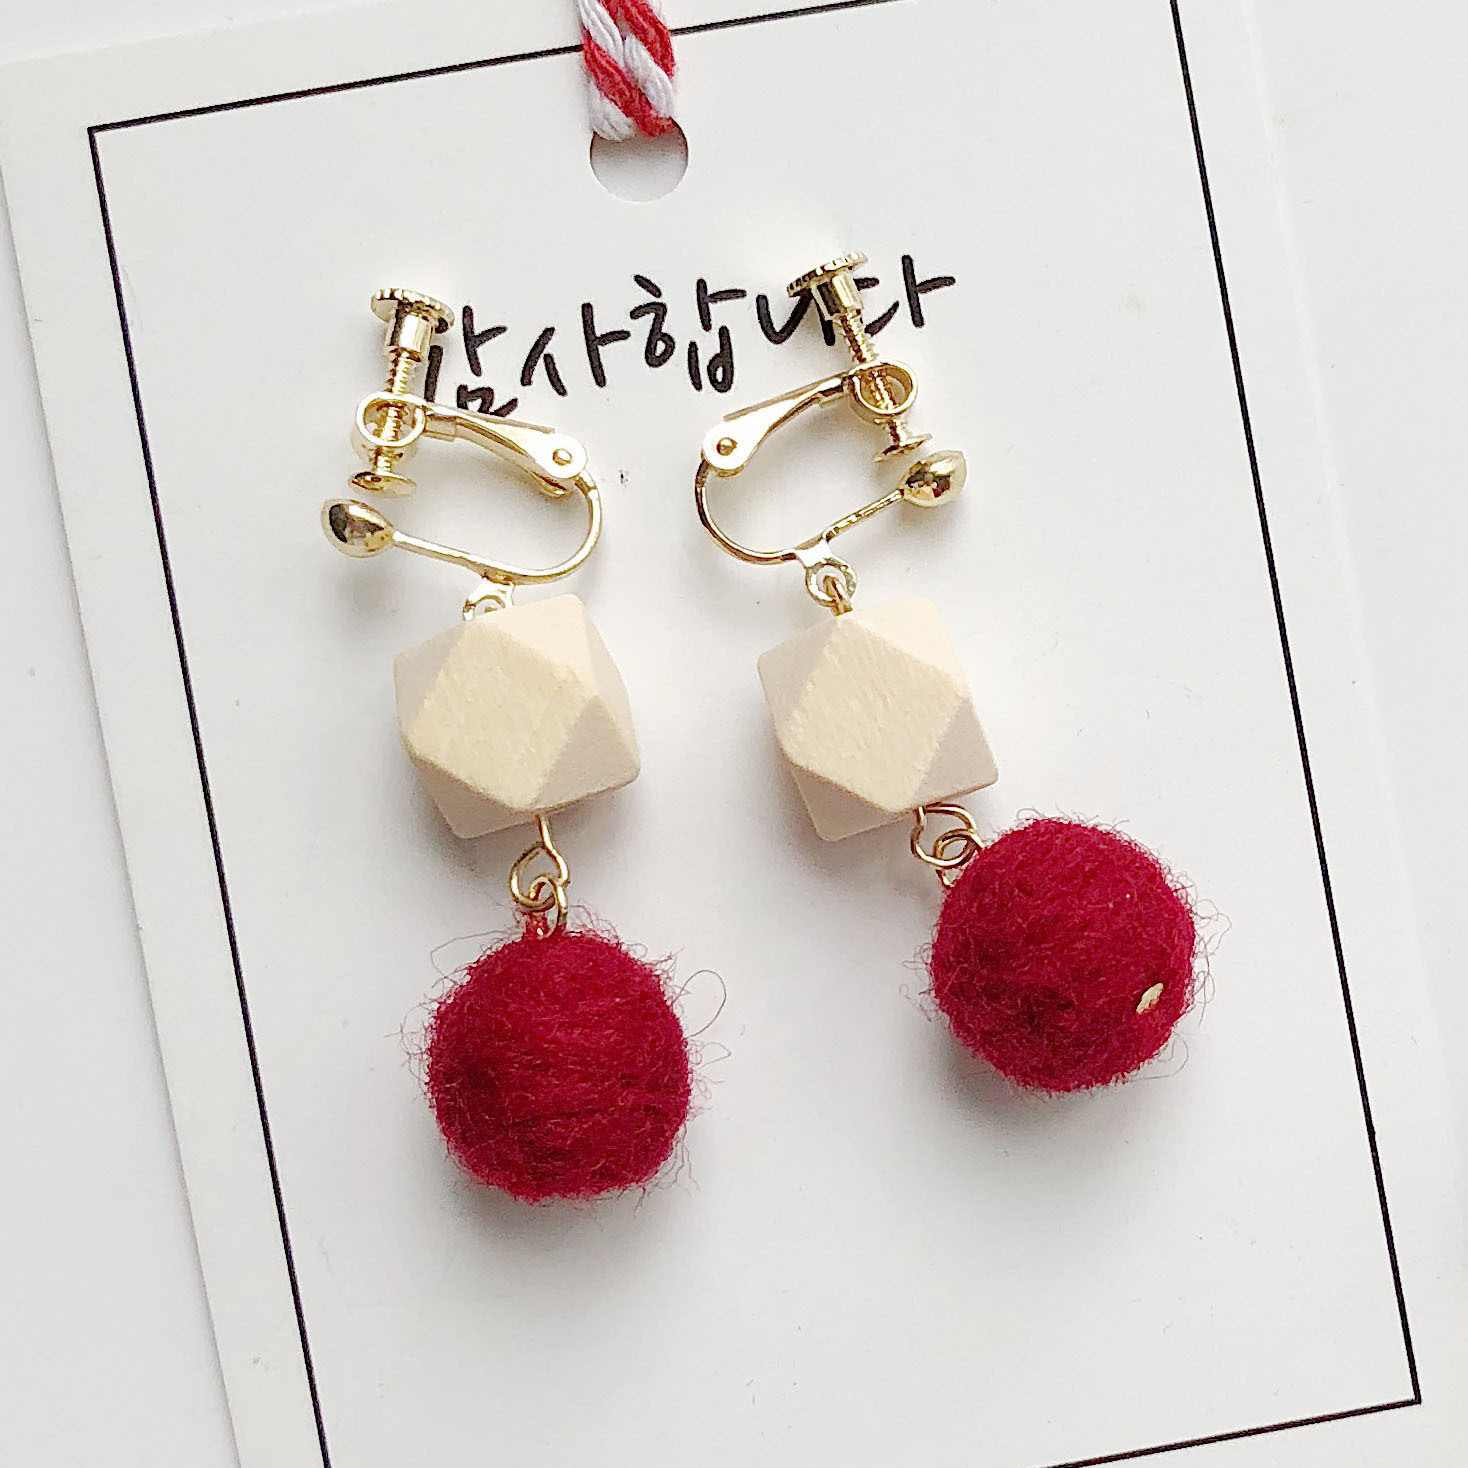 Wool Ball Pom Pom wooden Earrings for women PomPom Multicolor Temperament Concise earings fashion trendy summer jewelry 2019 new in Drop Earrings from Jewelry Accessories